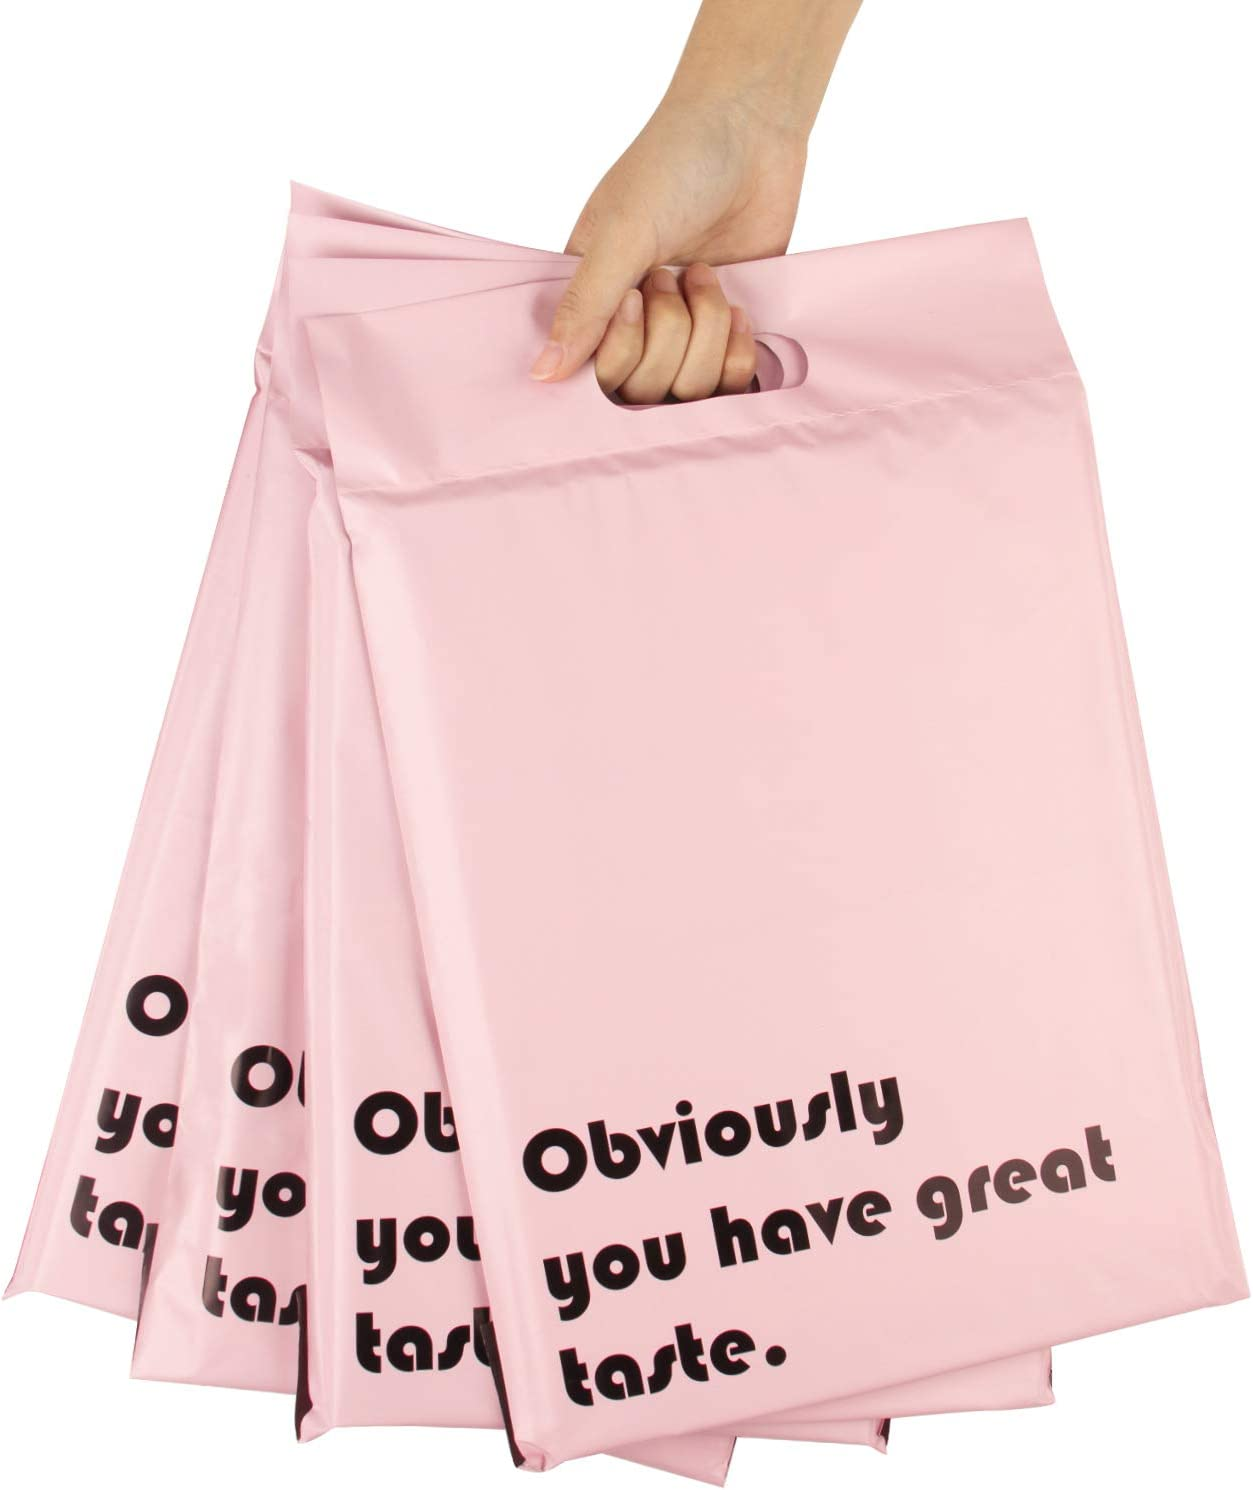 RUSPEPA Super sale period limited Poly Mailers 10x13 Inch Max 70% OFF with Shippi Handle Pink Build-in